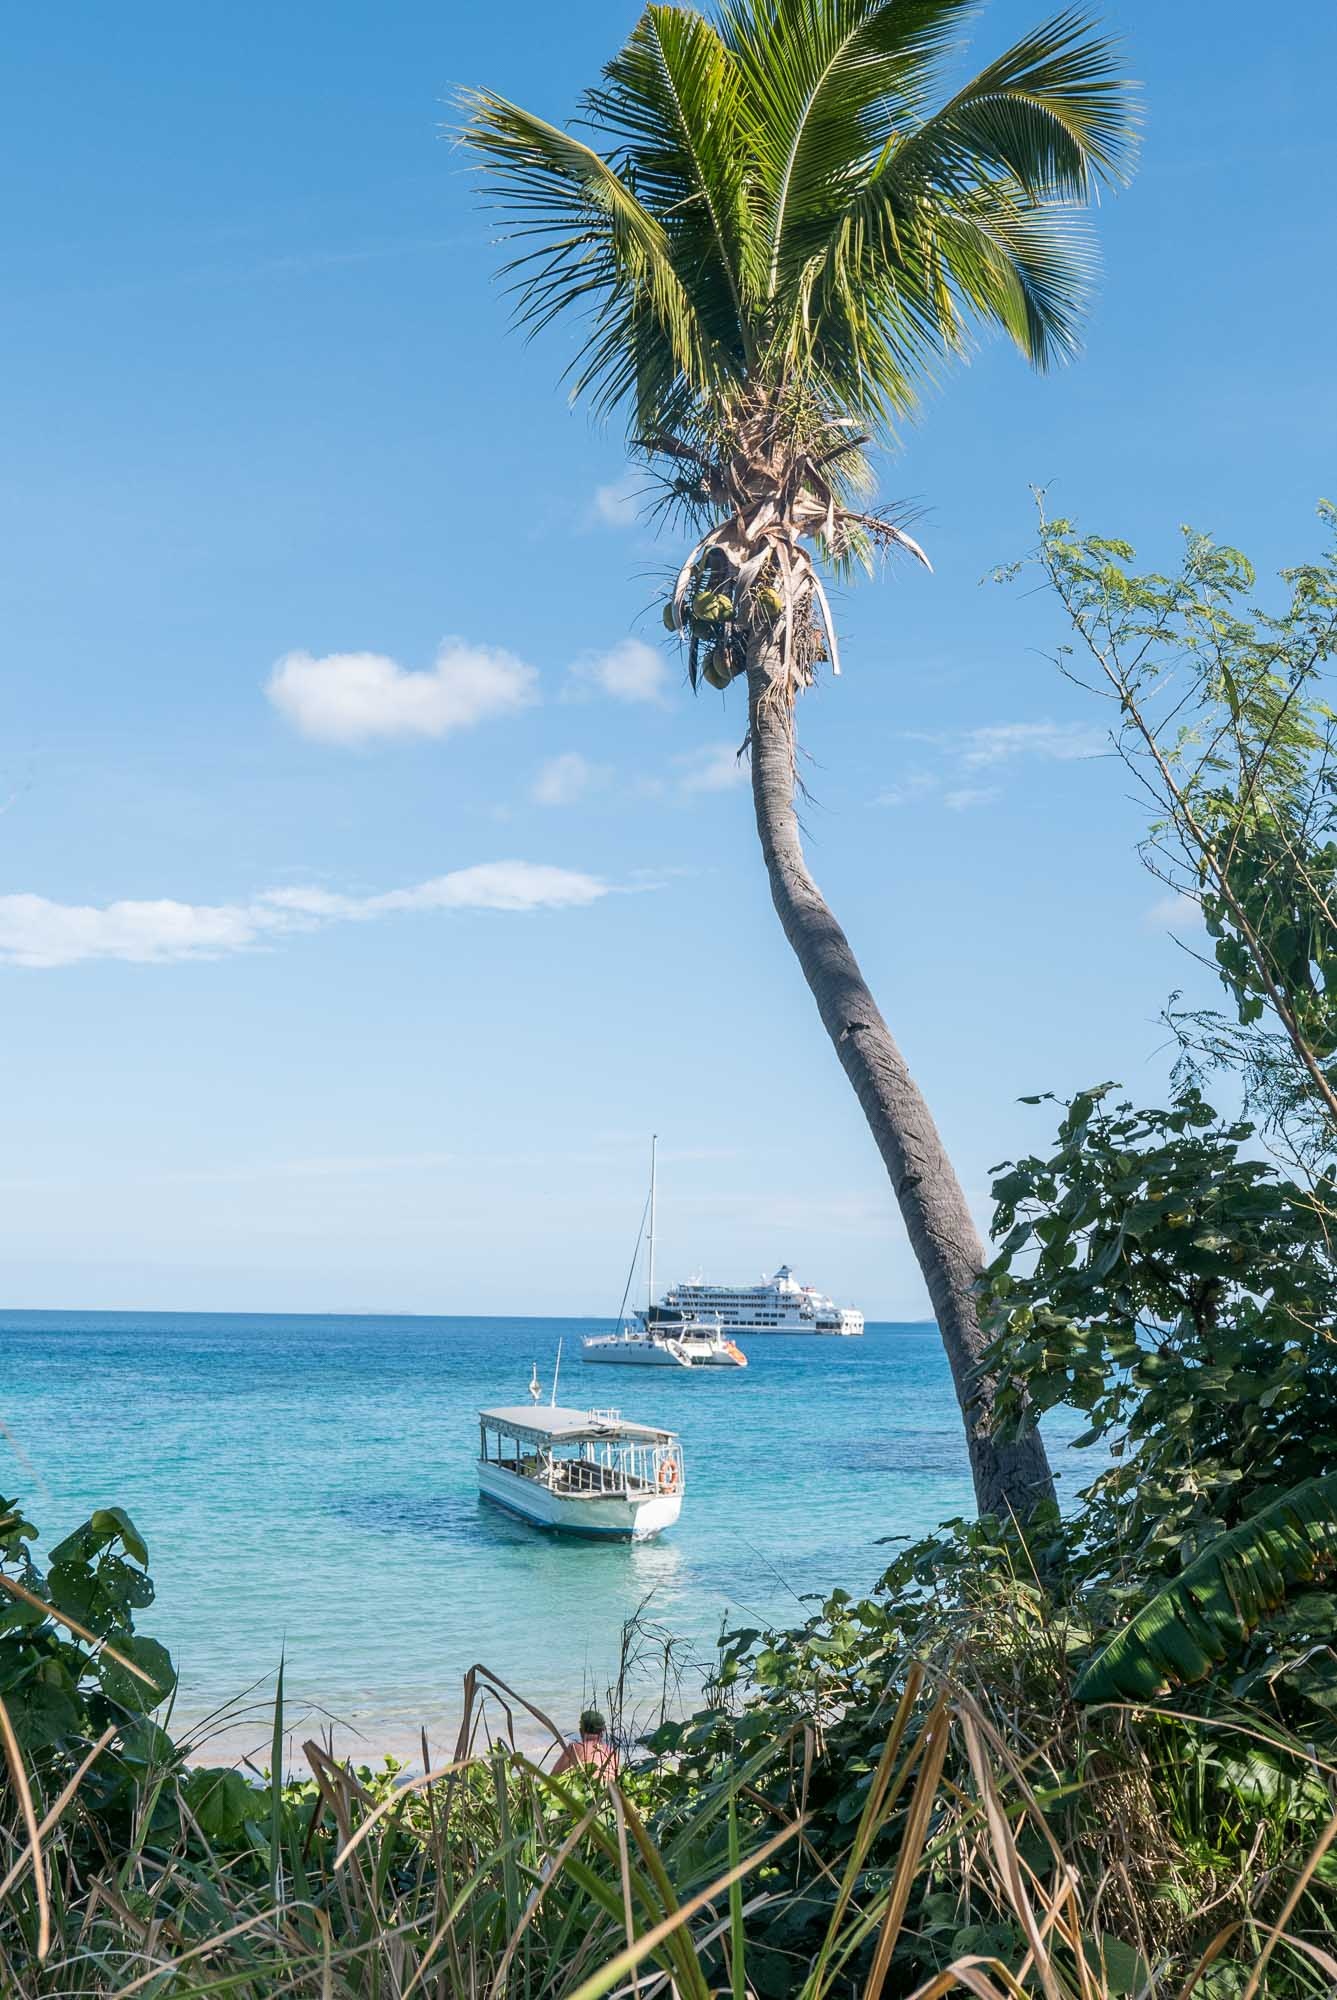 COCONUTS, KAVA AND CRAB RACES IN FIJI